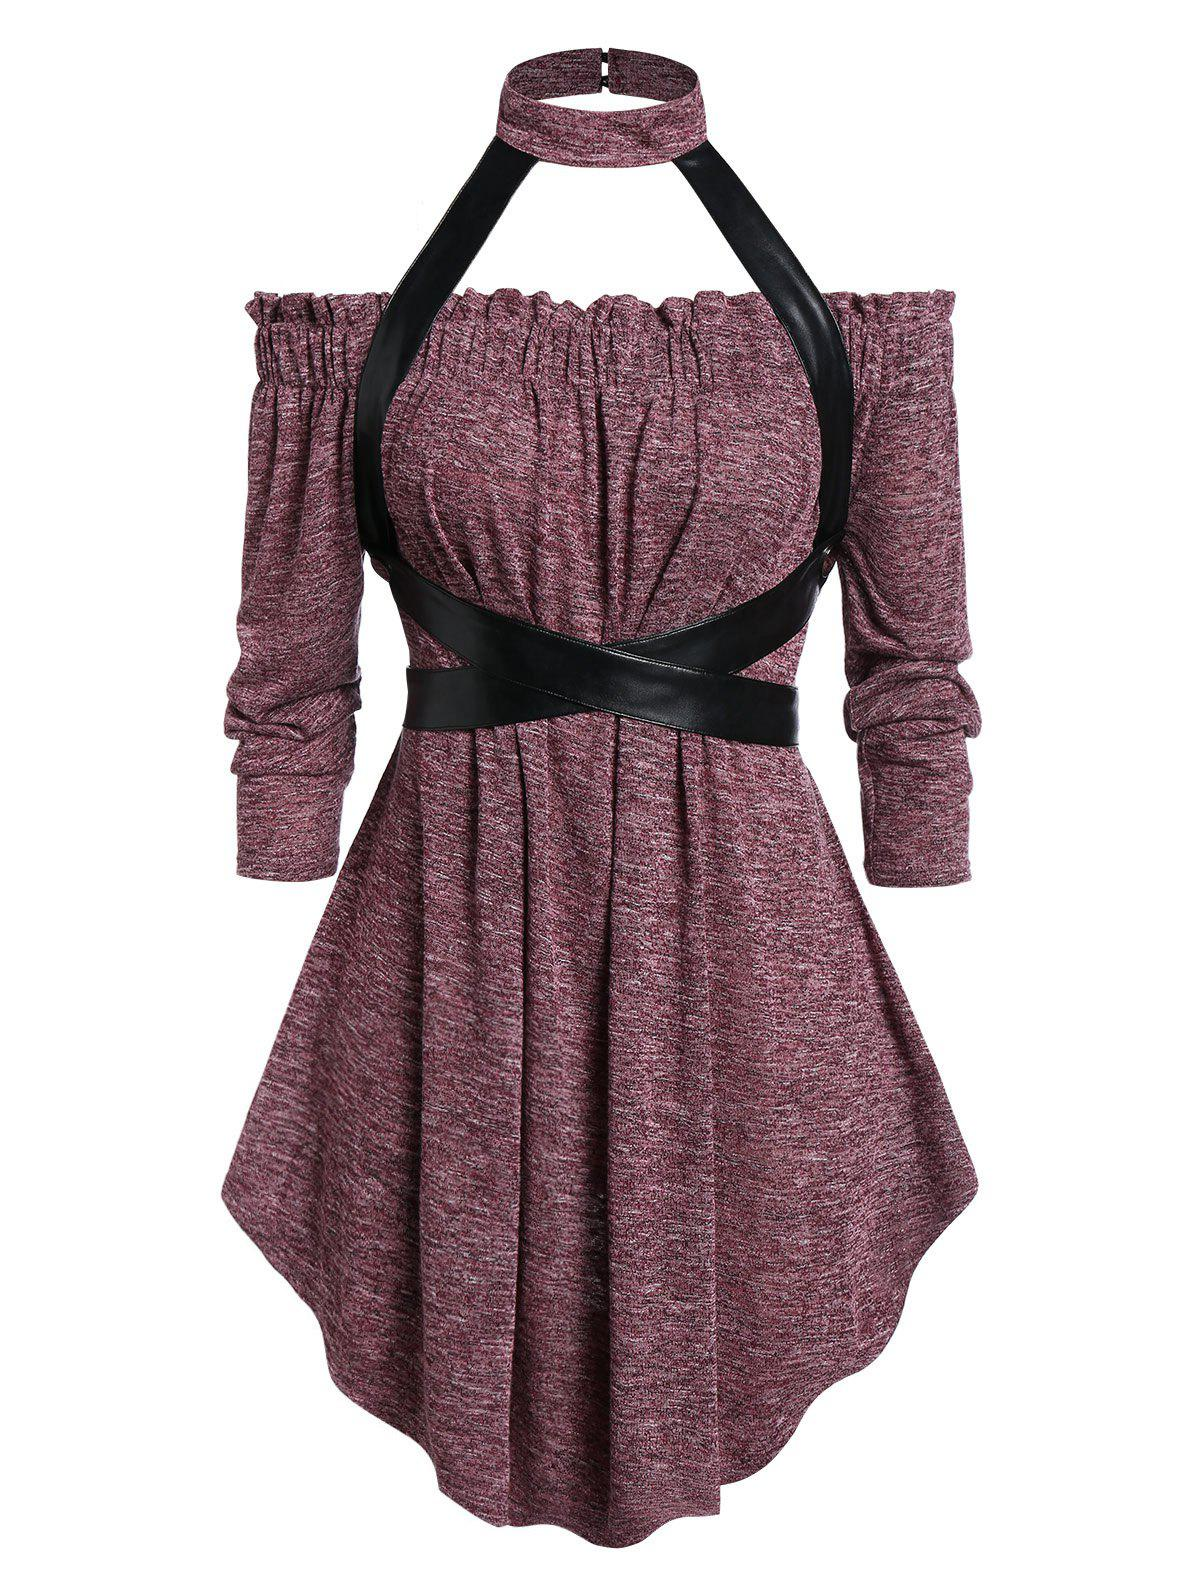 Trendy Plus Size Gothic Choker Harness Marled Tee